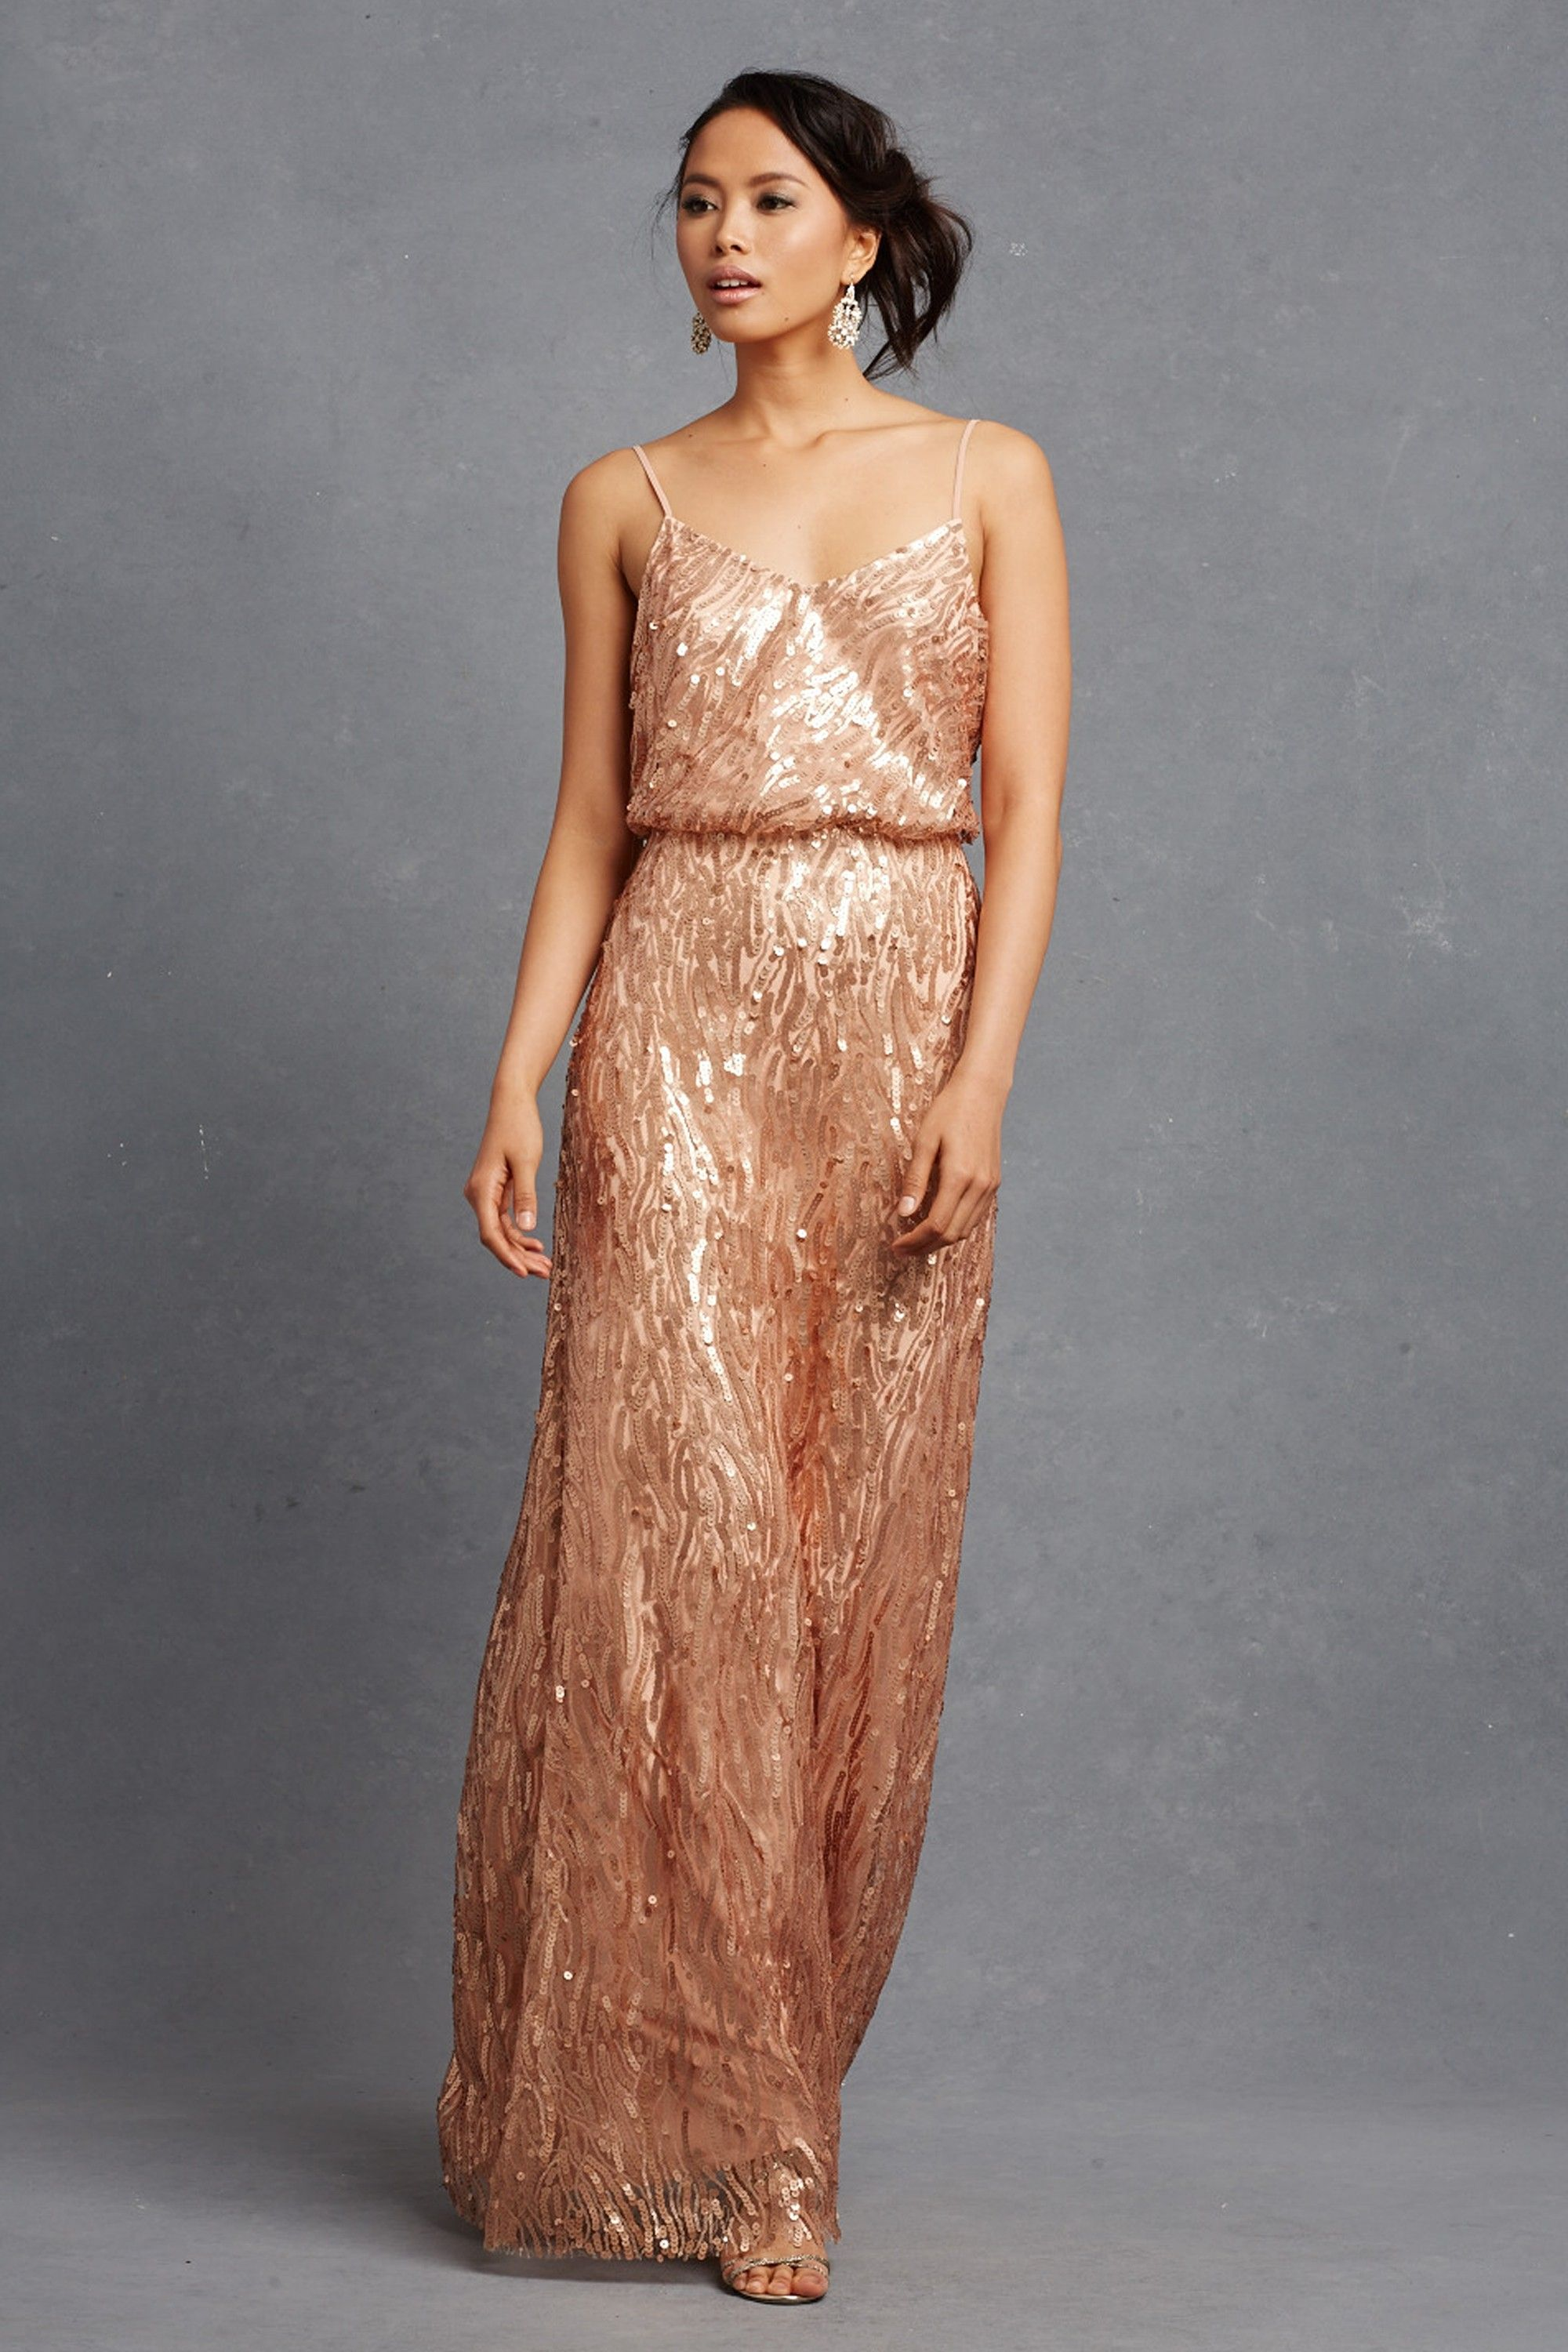 Romantic Dresses and Sequined Gowns for Weddings from Donna Morgan ...